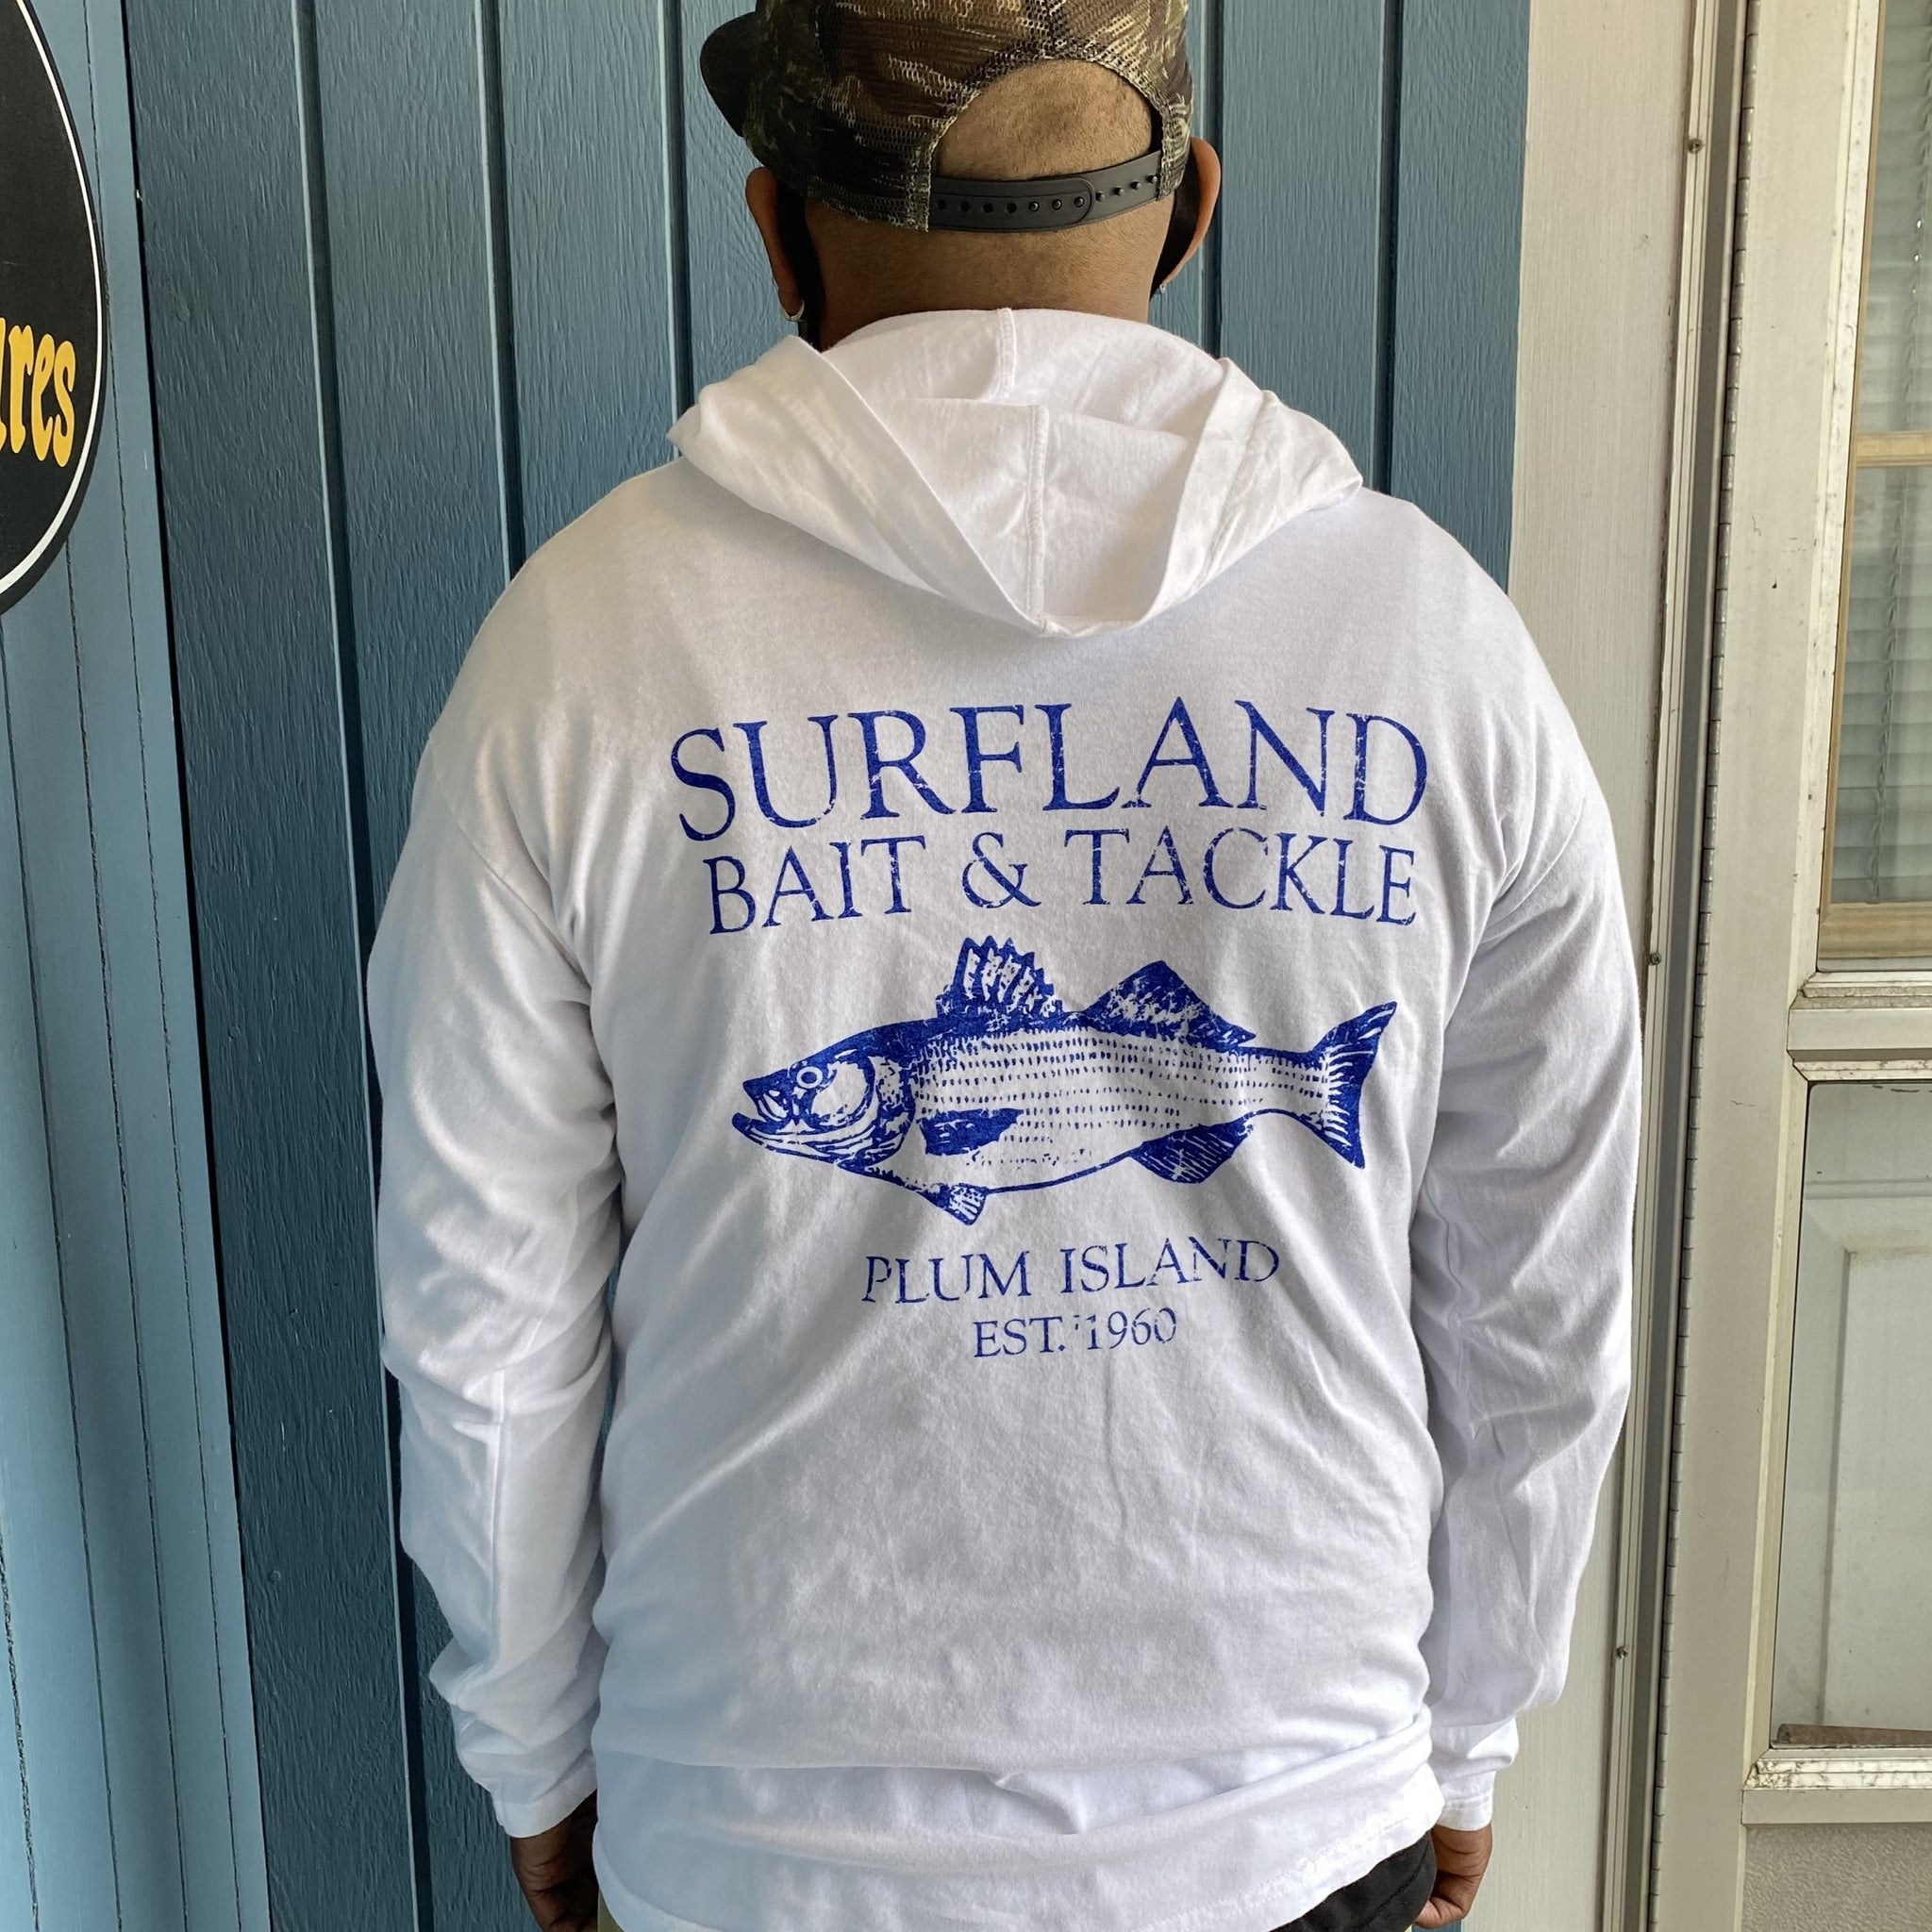 Surfland Gear - SBT Original Long-sleeve Hooded Tee